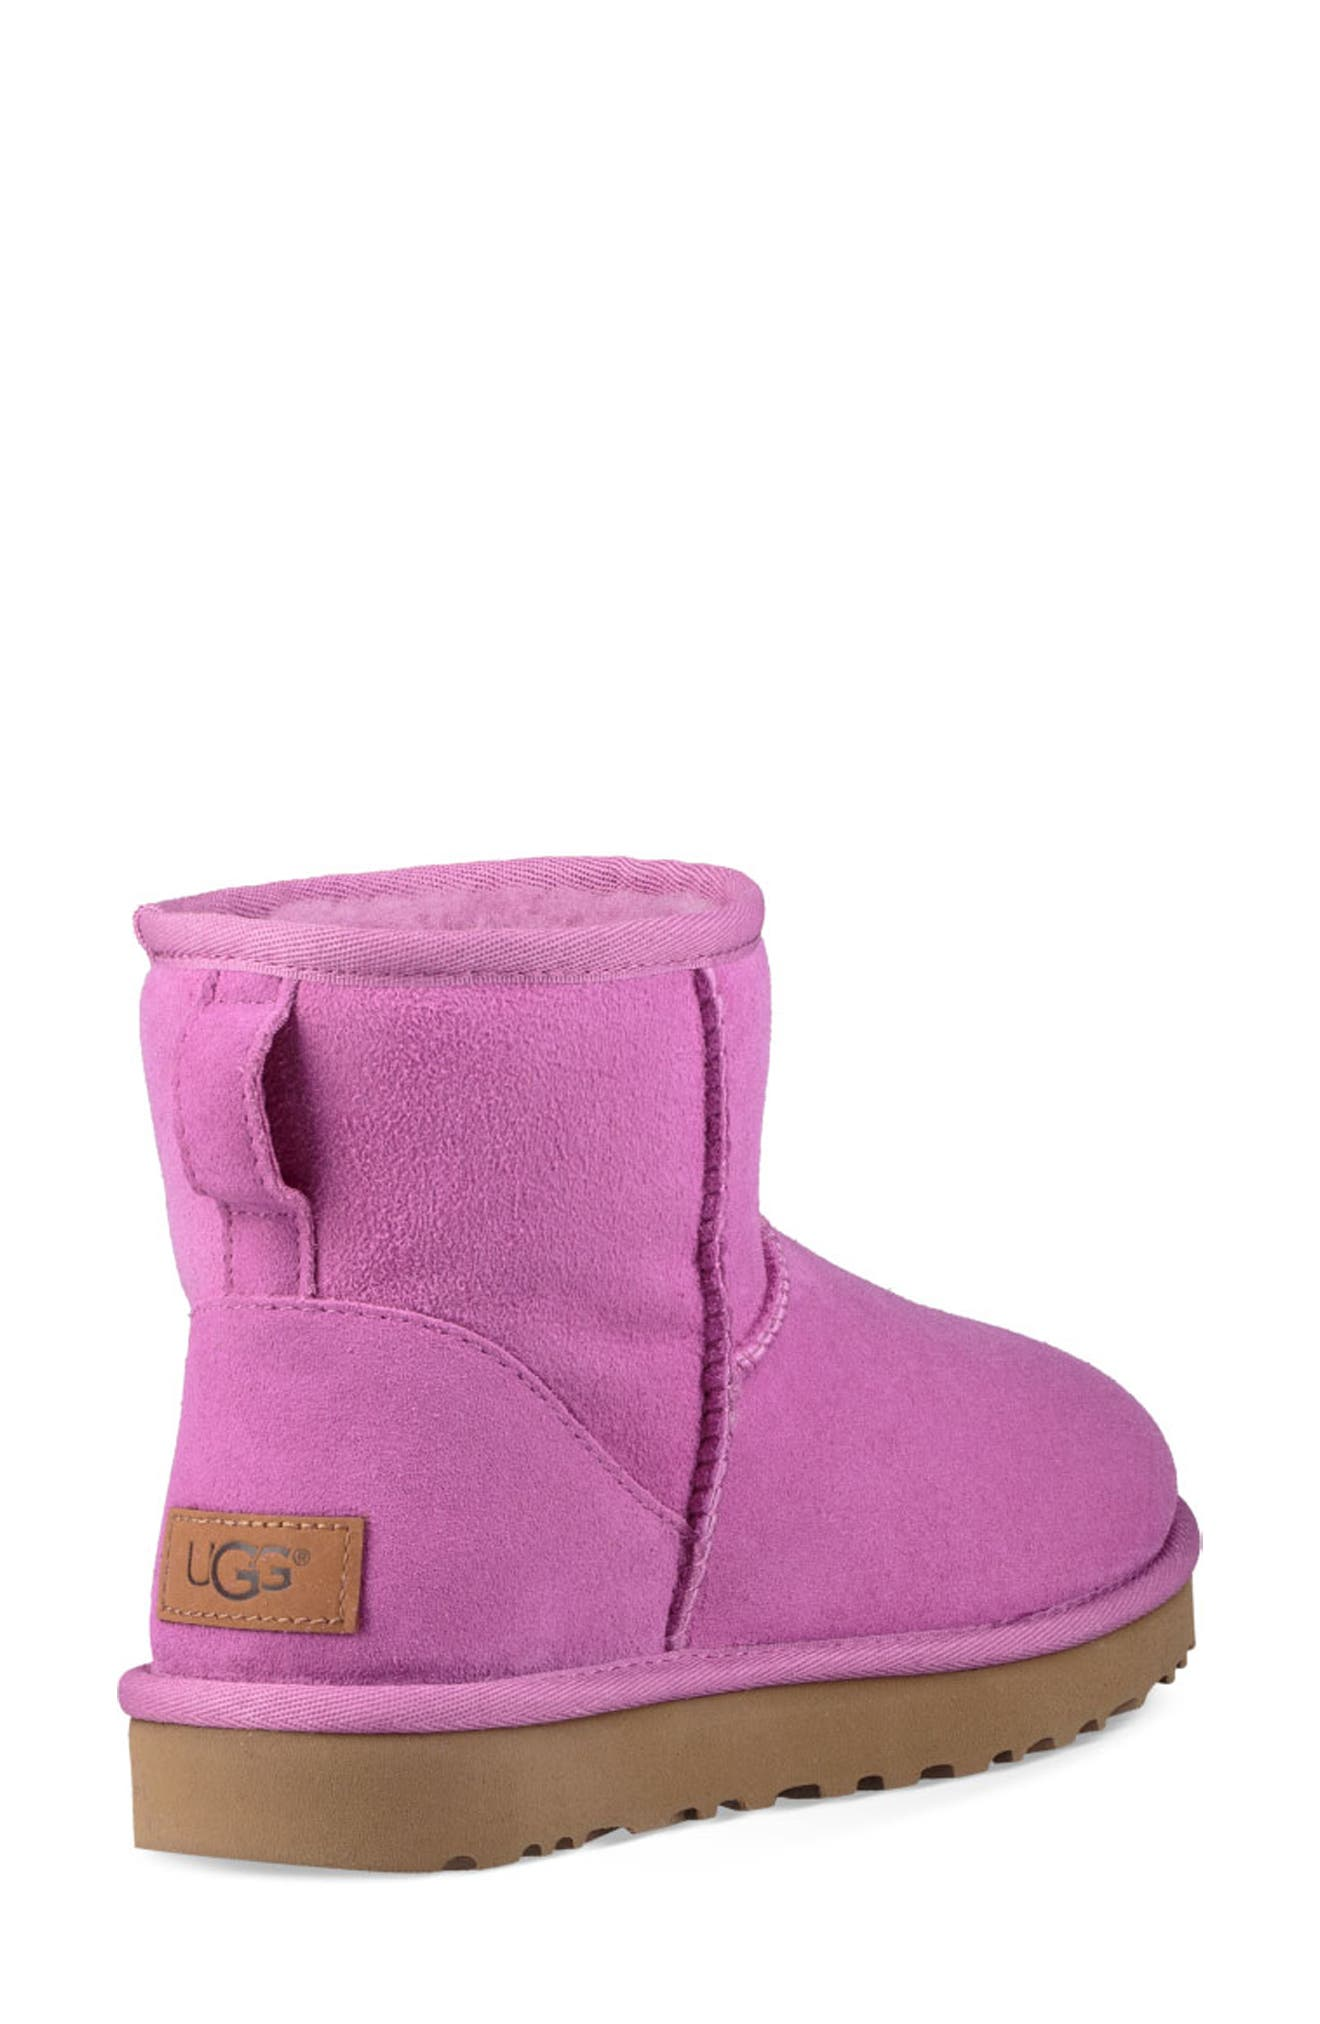 'Classic Mini II' Genuine Shearling Lined Boot,                             Alternate thumbnail 2, color,                             BODACIOUS SUEDE